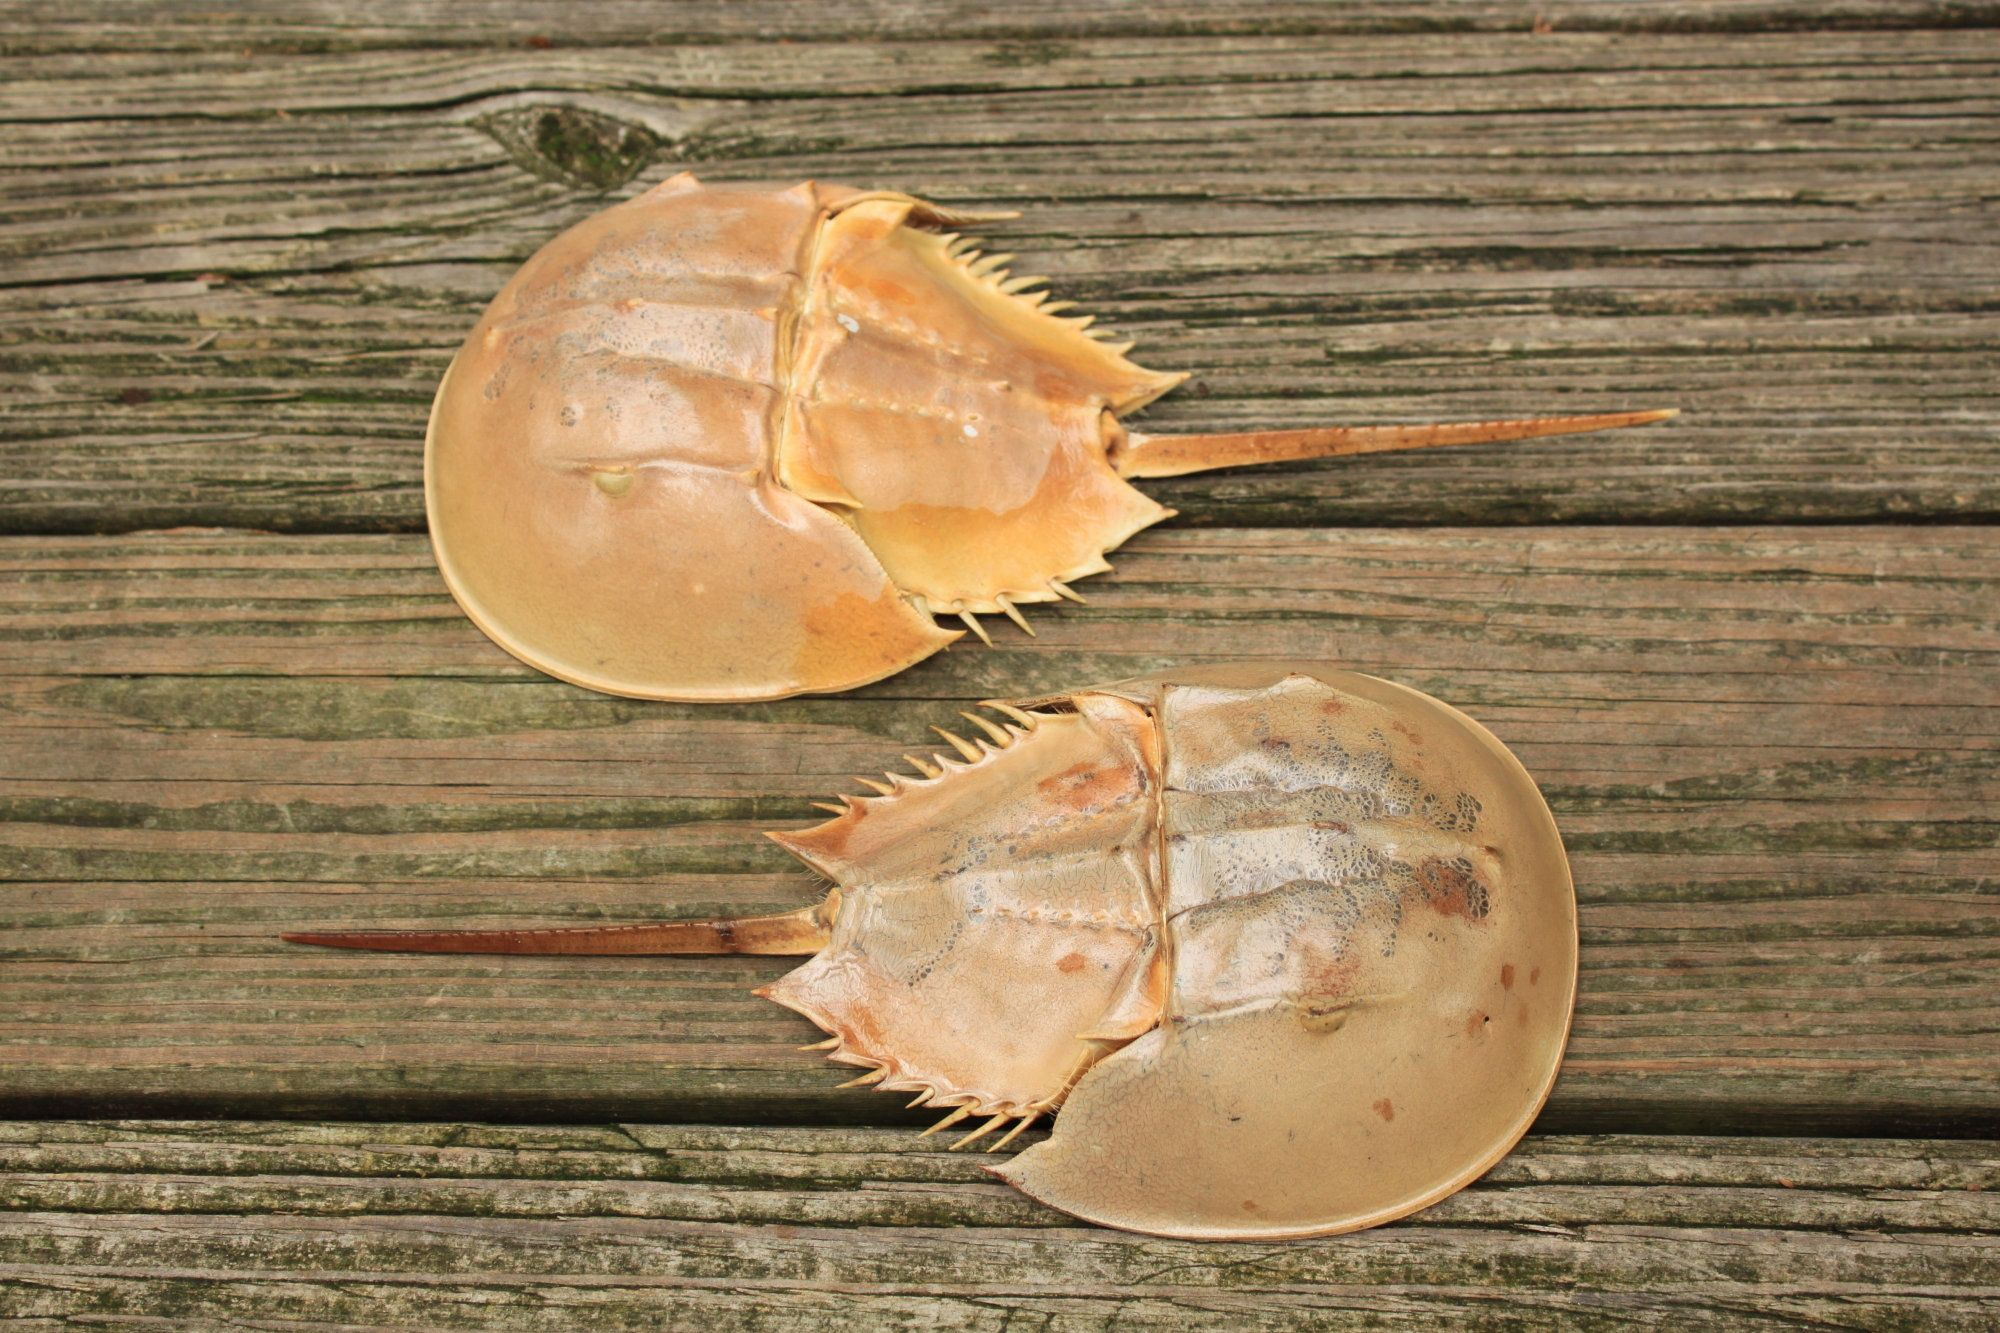 2 Small Horseshoe Crab Shells Etsy Shop Owner Etsy Shop Etsy Finds